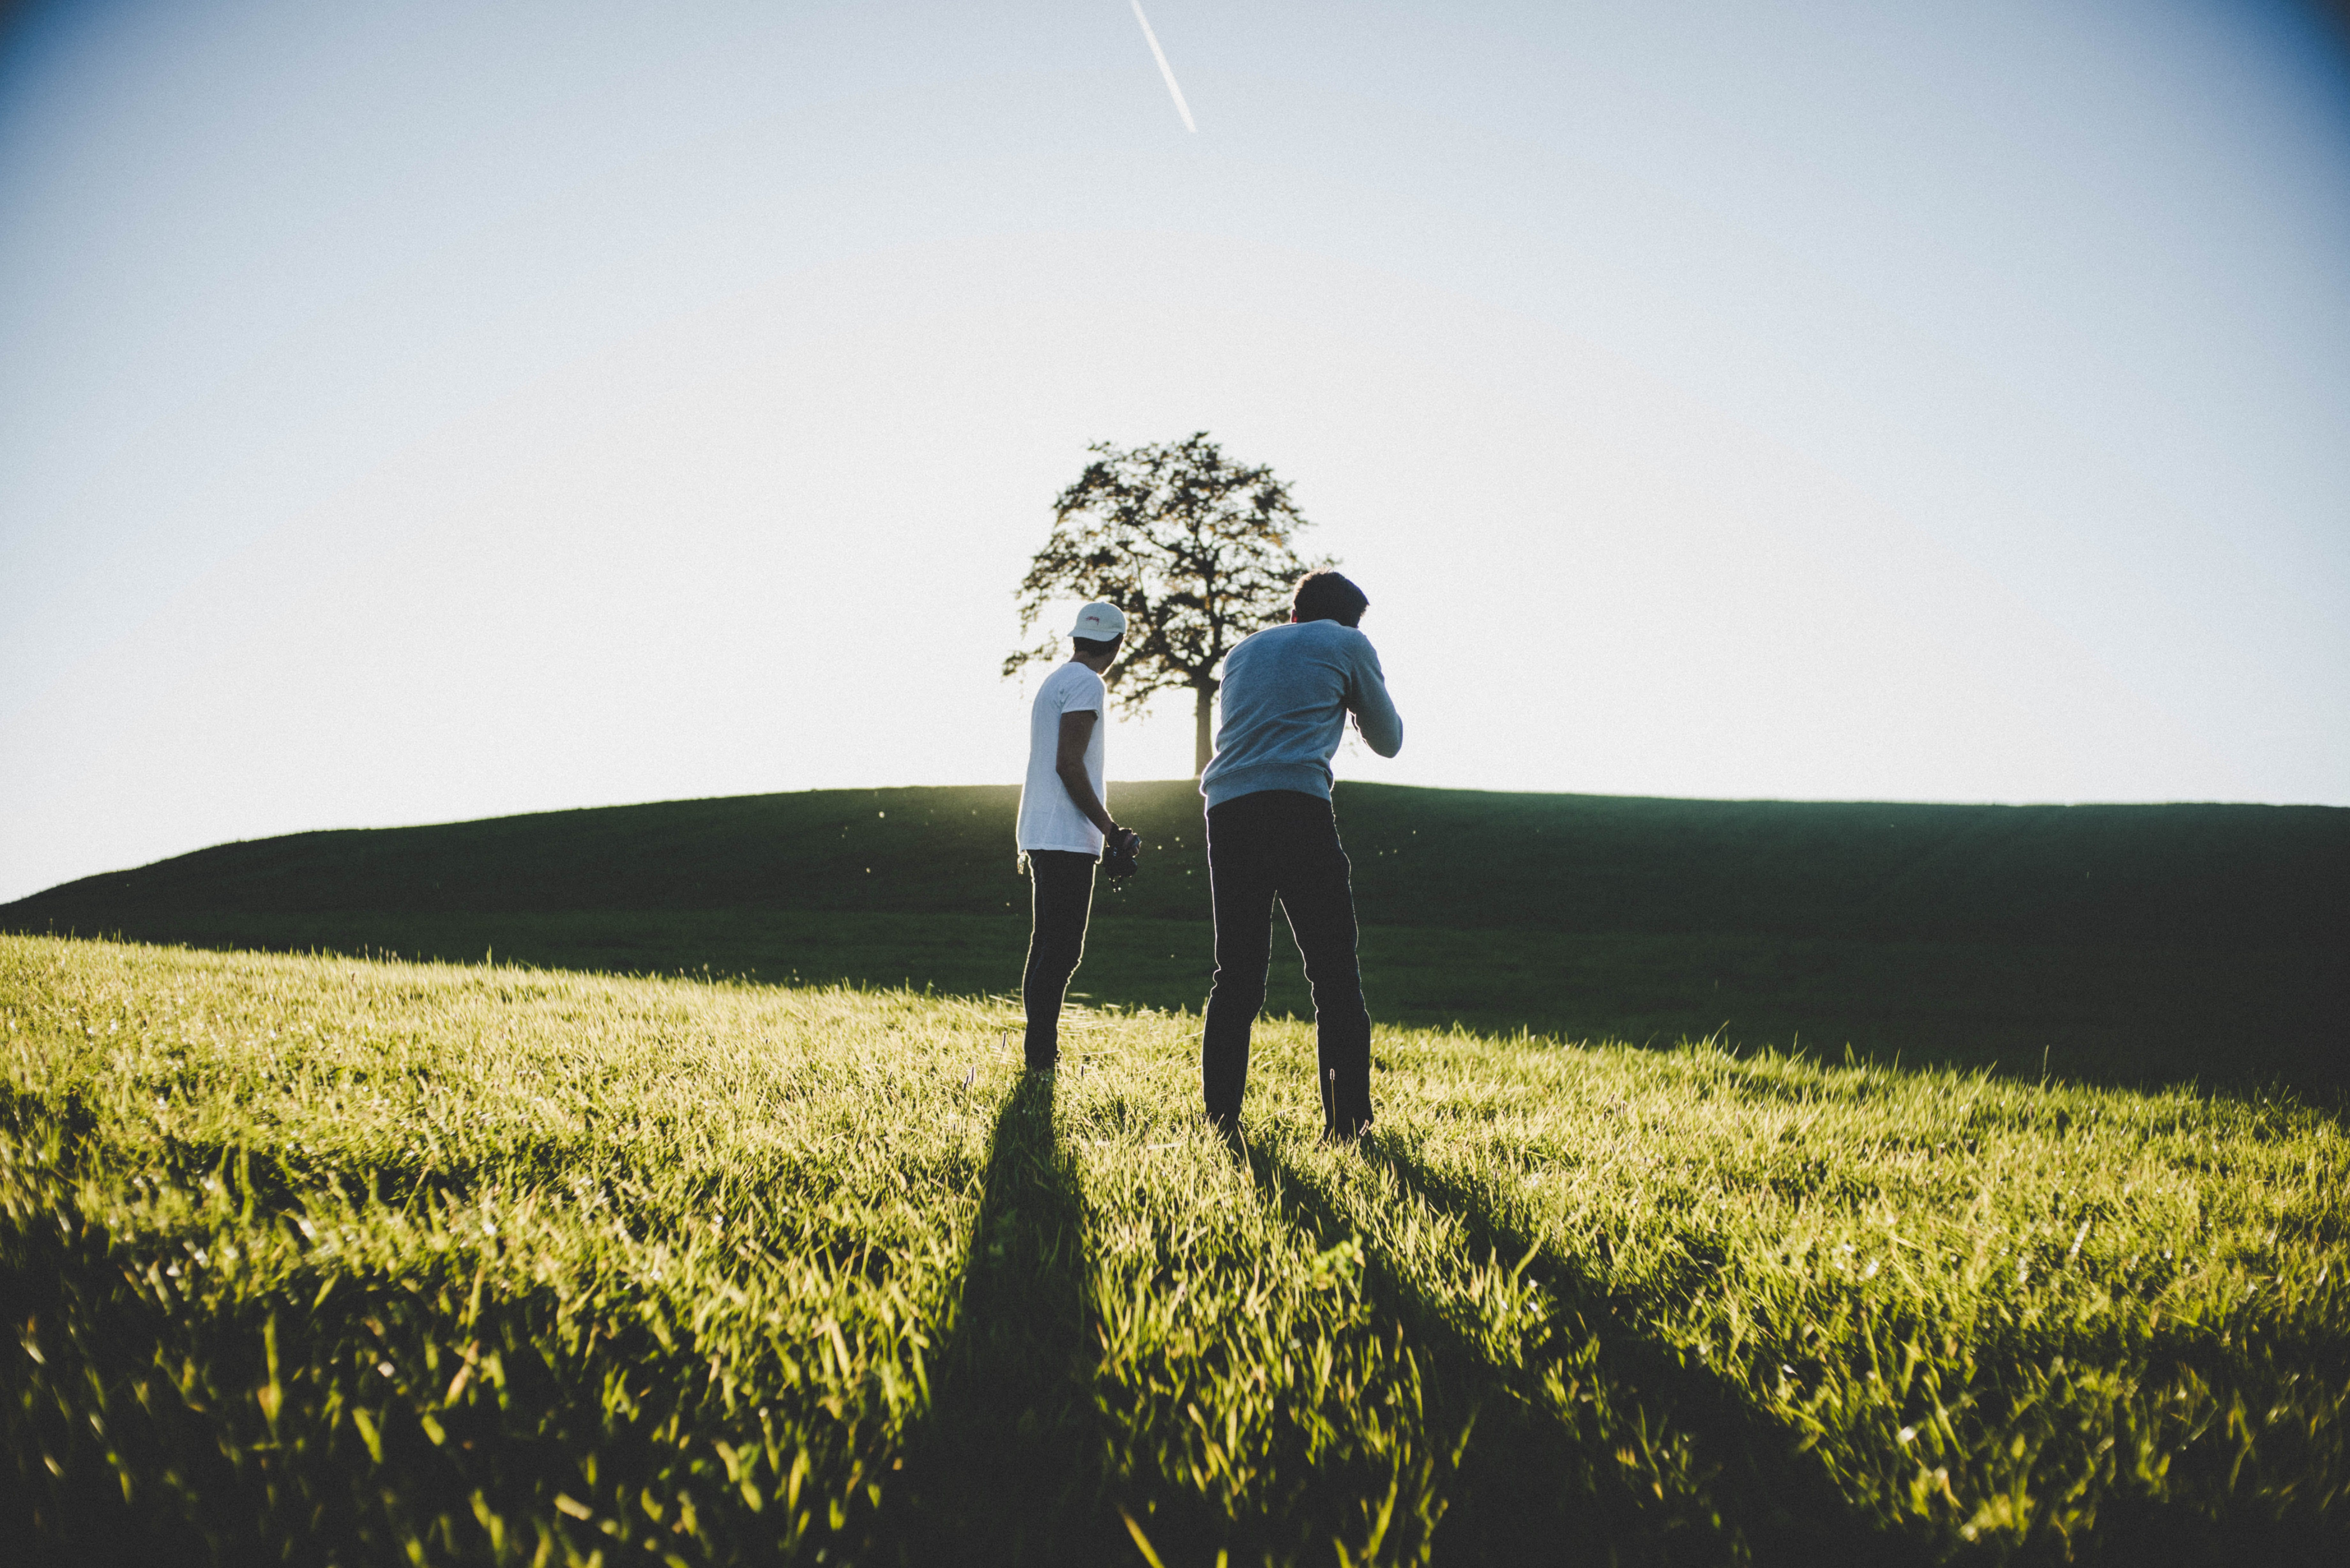 Free stock photo of landscape, people, field, taking photo